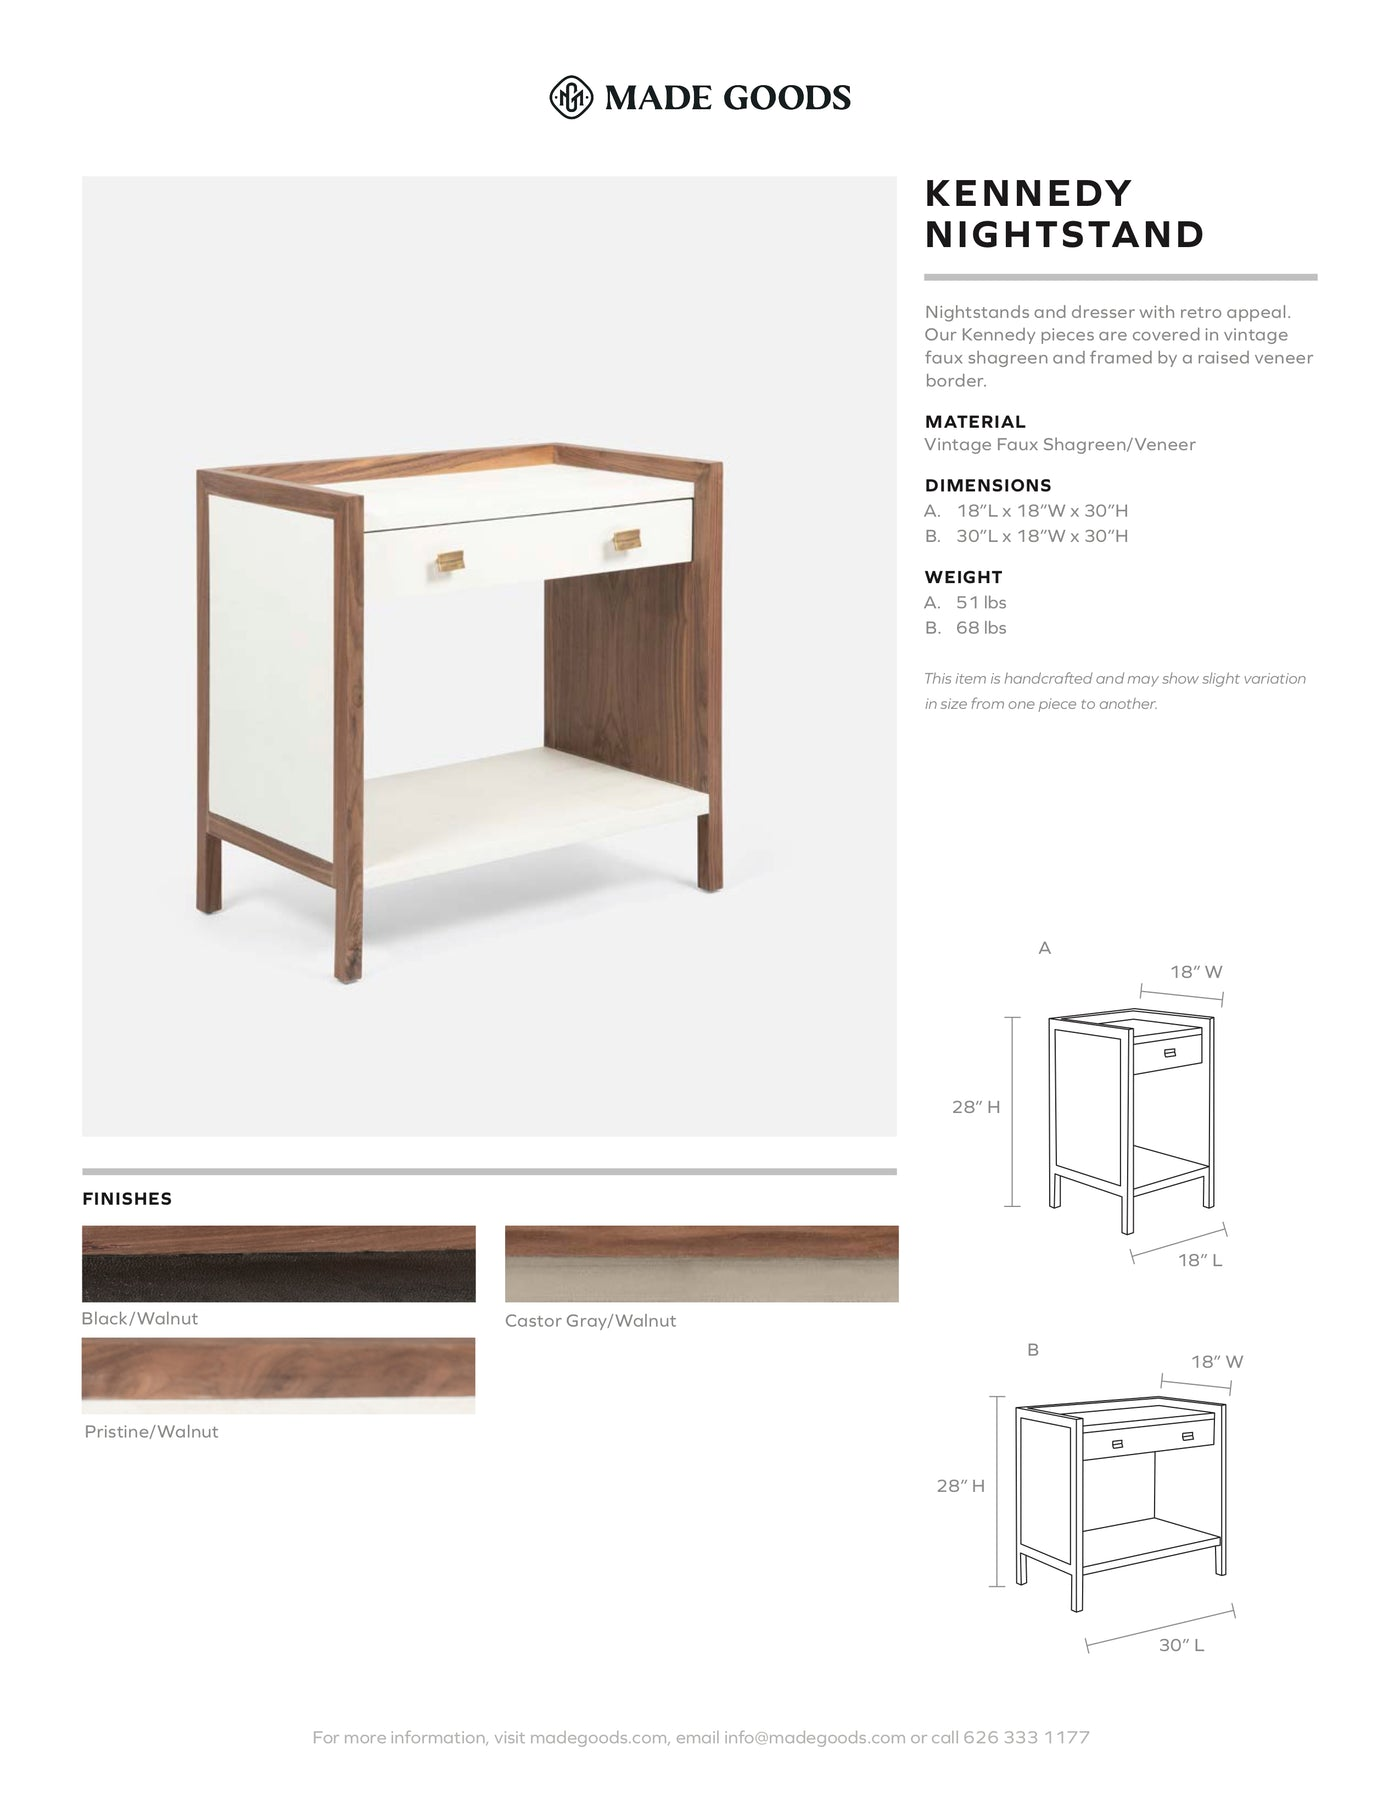 made goods kennedy nightstand tearsheet